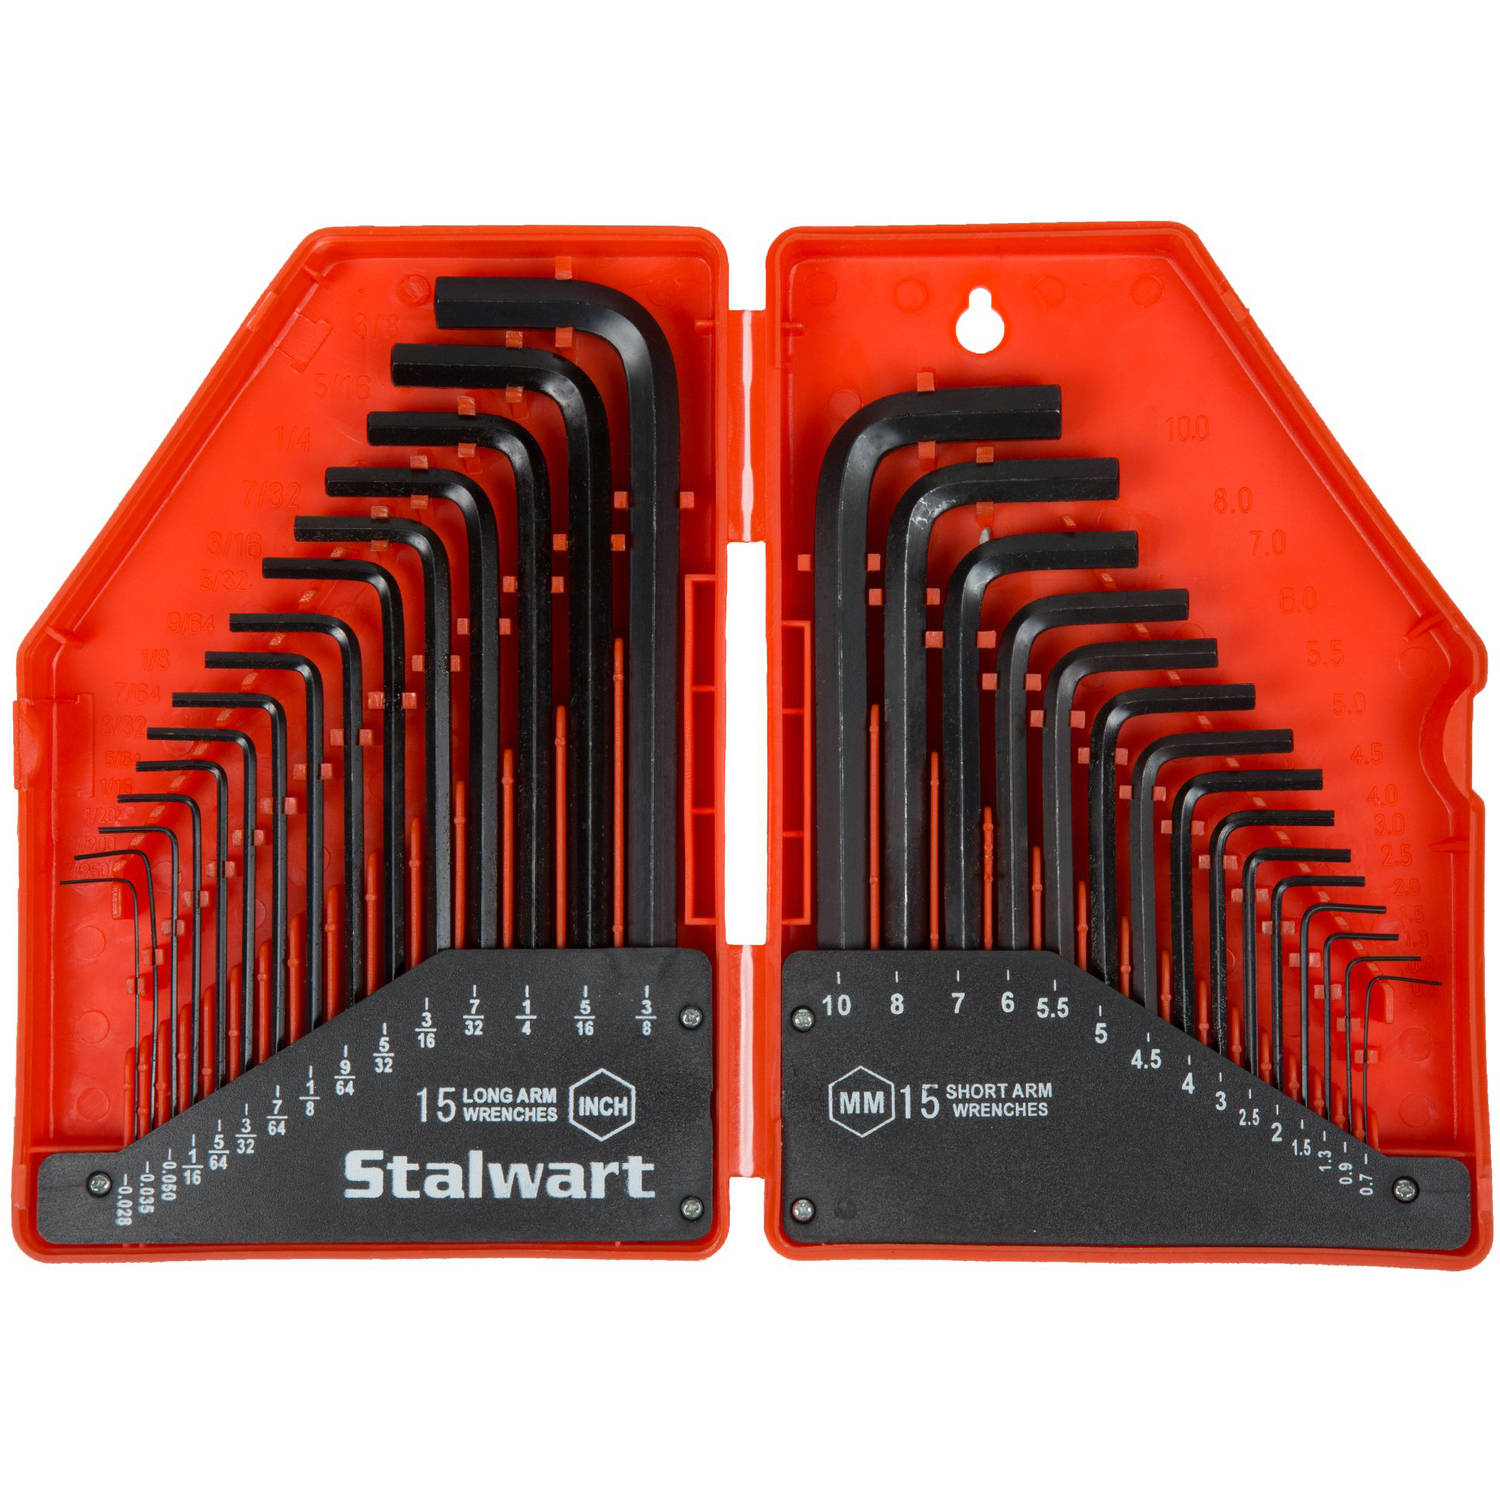 Stalwart 30-Piece Hex Key Wrench Set, Combo SAE and Metric